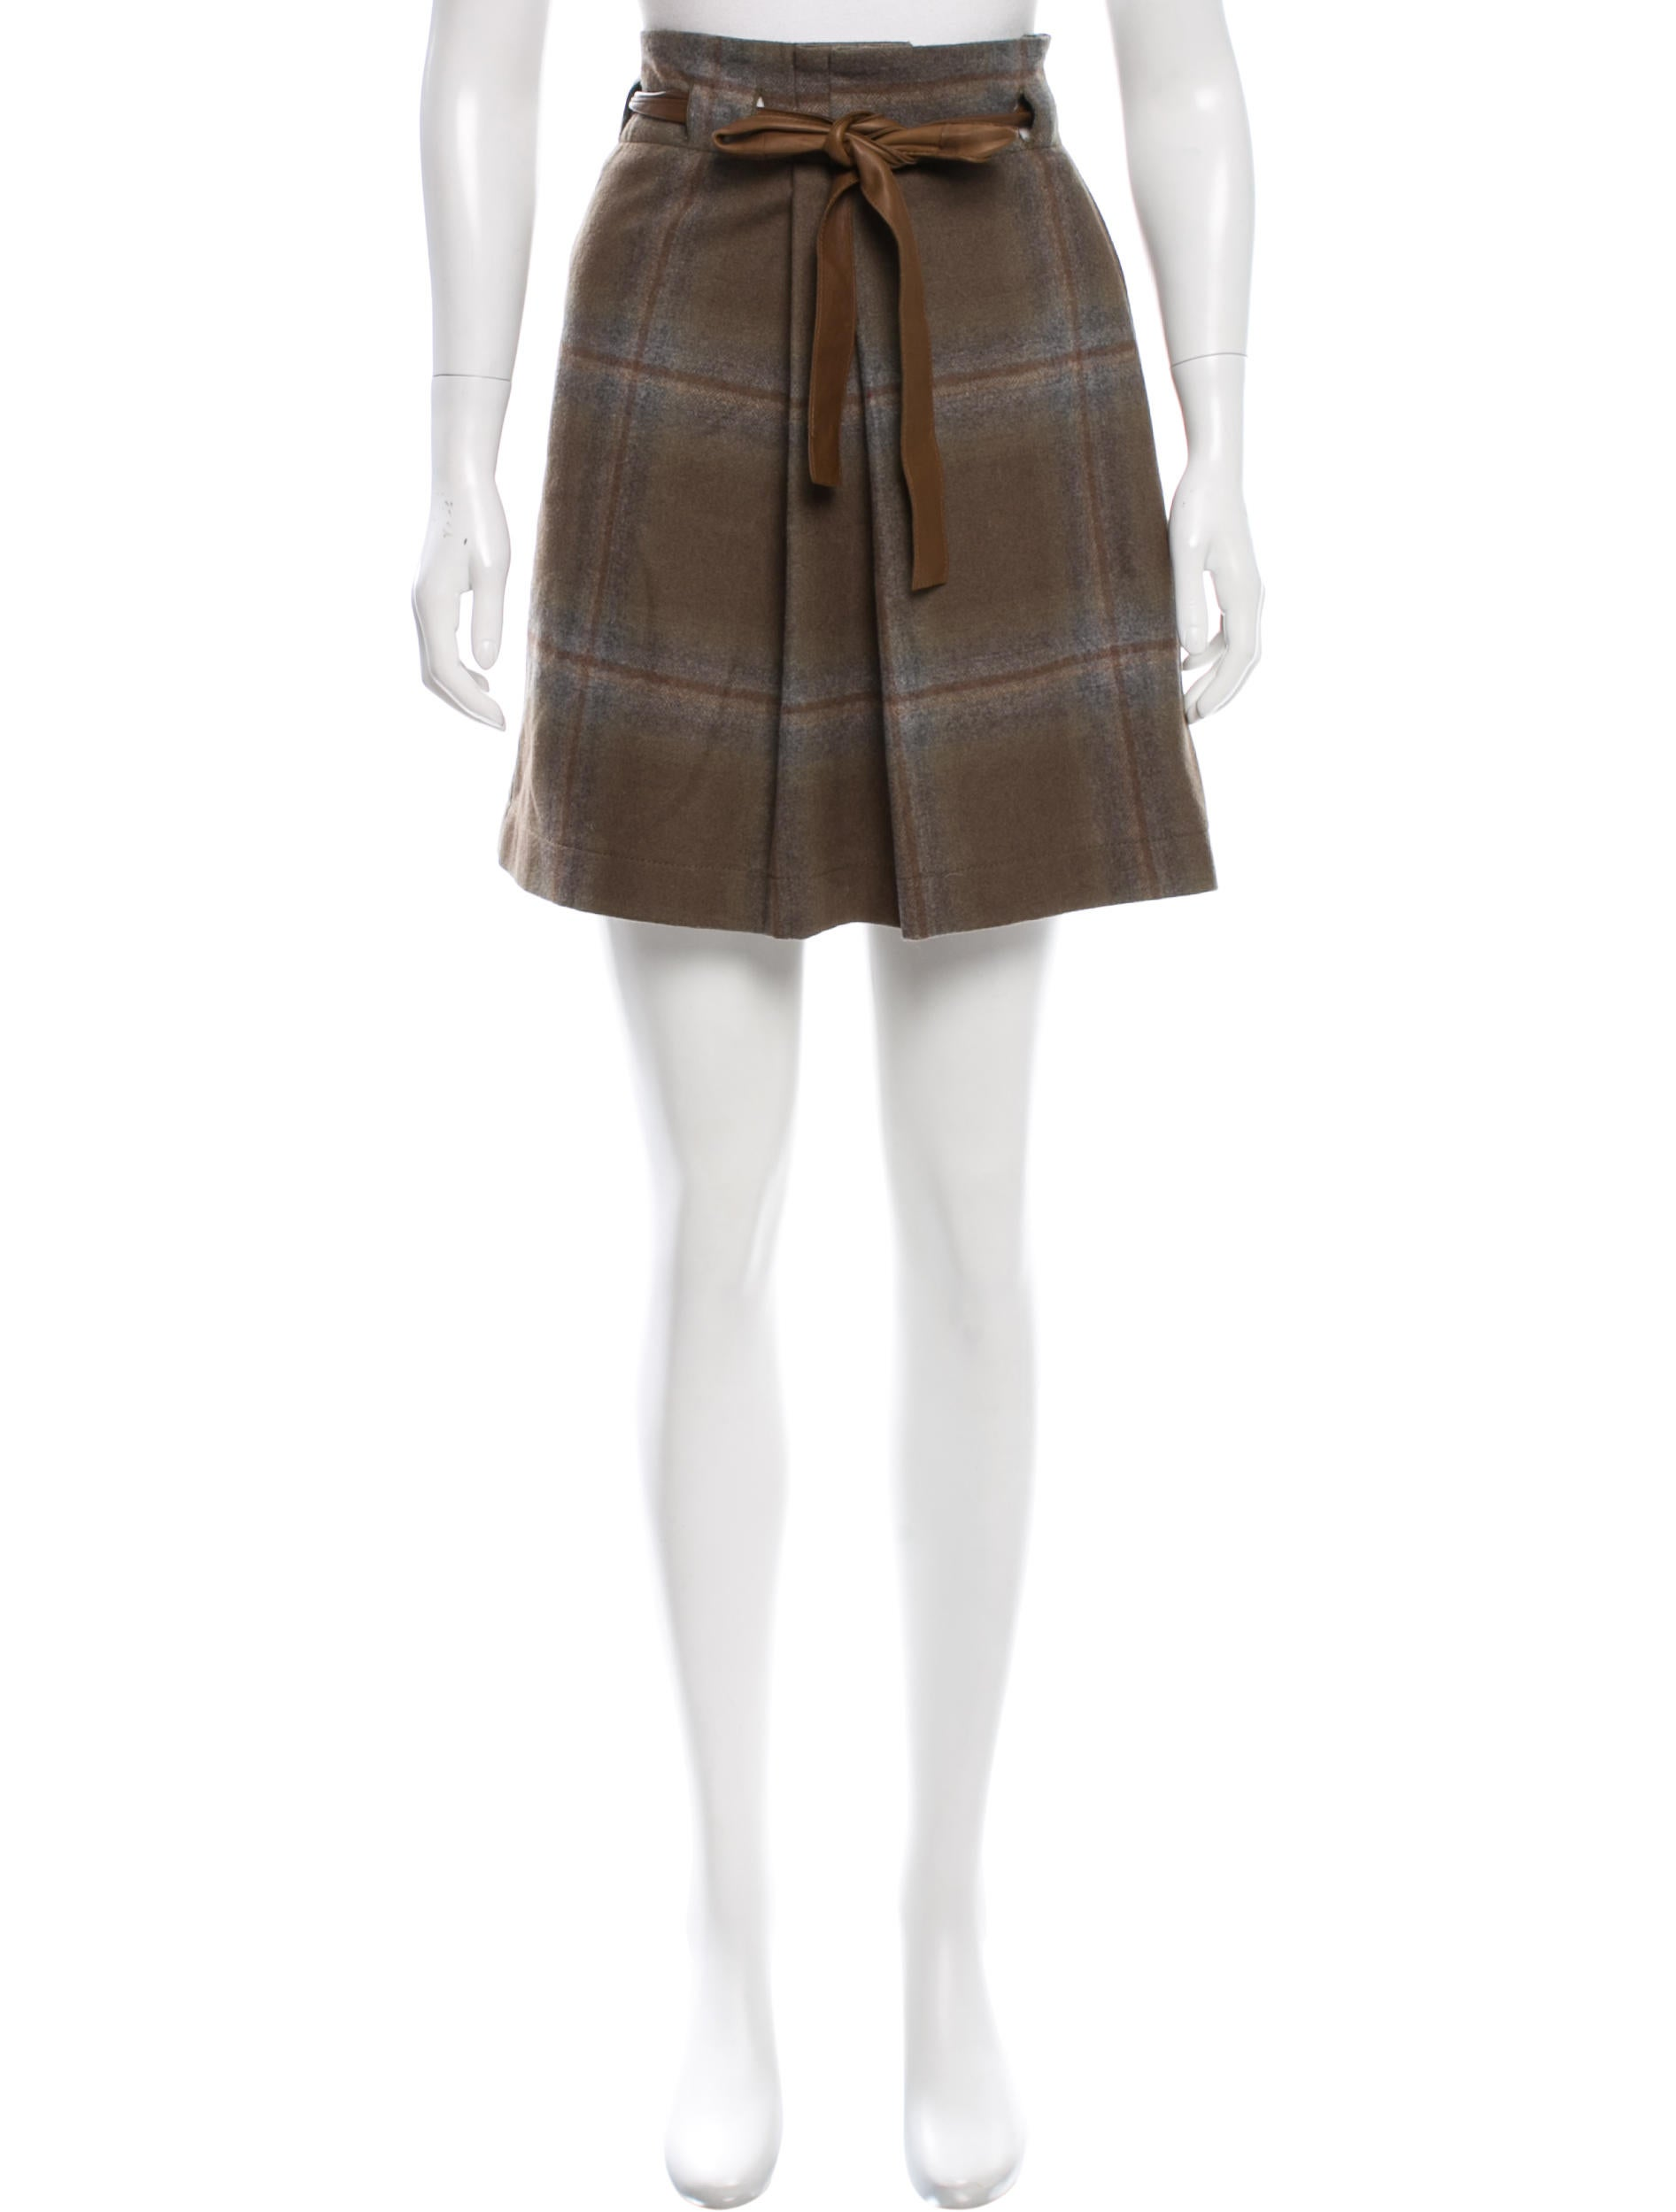 Marc Jacobs Pleated Side-Zip A-Line Wool Skirt Details Marc Jacobs wool skirt with paneled pleating. Mid-rise; off-center front zip. A-line silhouette. Brunello Cucinelli Straight Plaid Wool Mini Skirt w/ Paillettes Details Brunello Cucinelli plaid wool skirt with paillettes. Natural rise. Straight silhouette. Hidden side zip. Mini length.